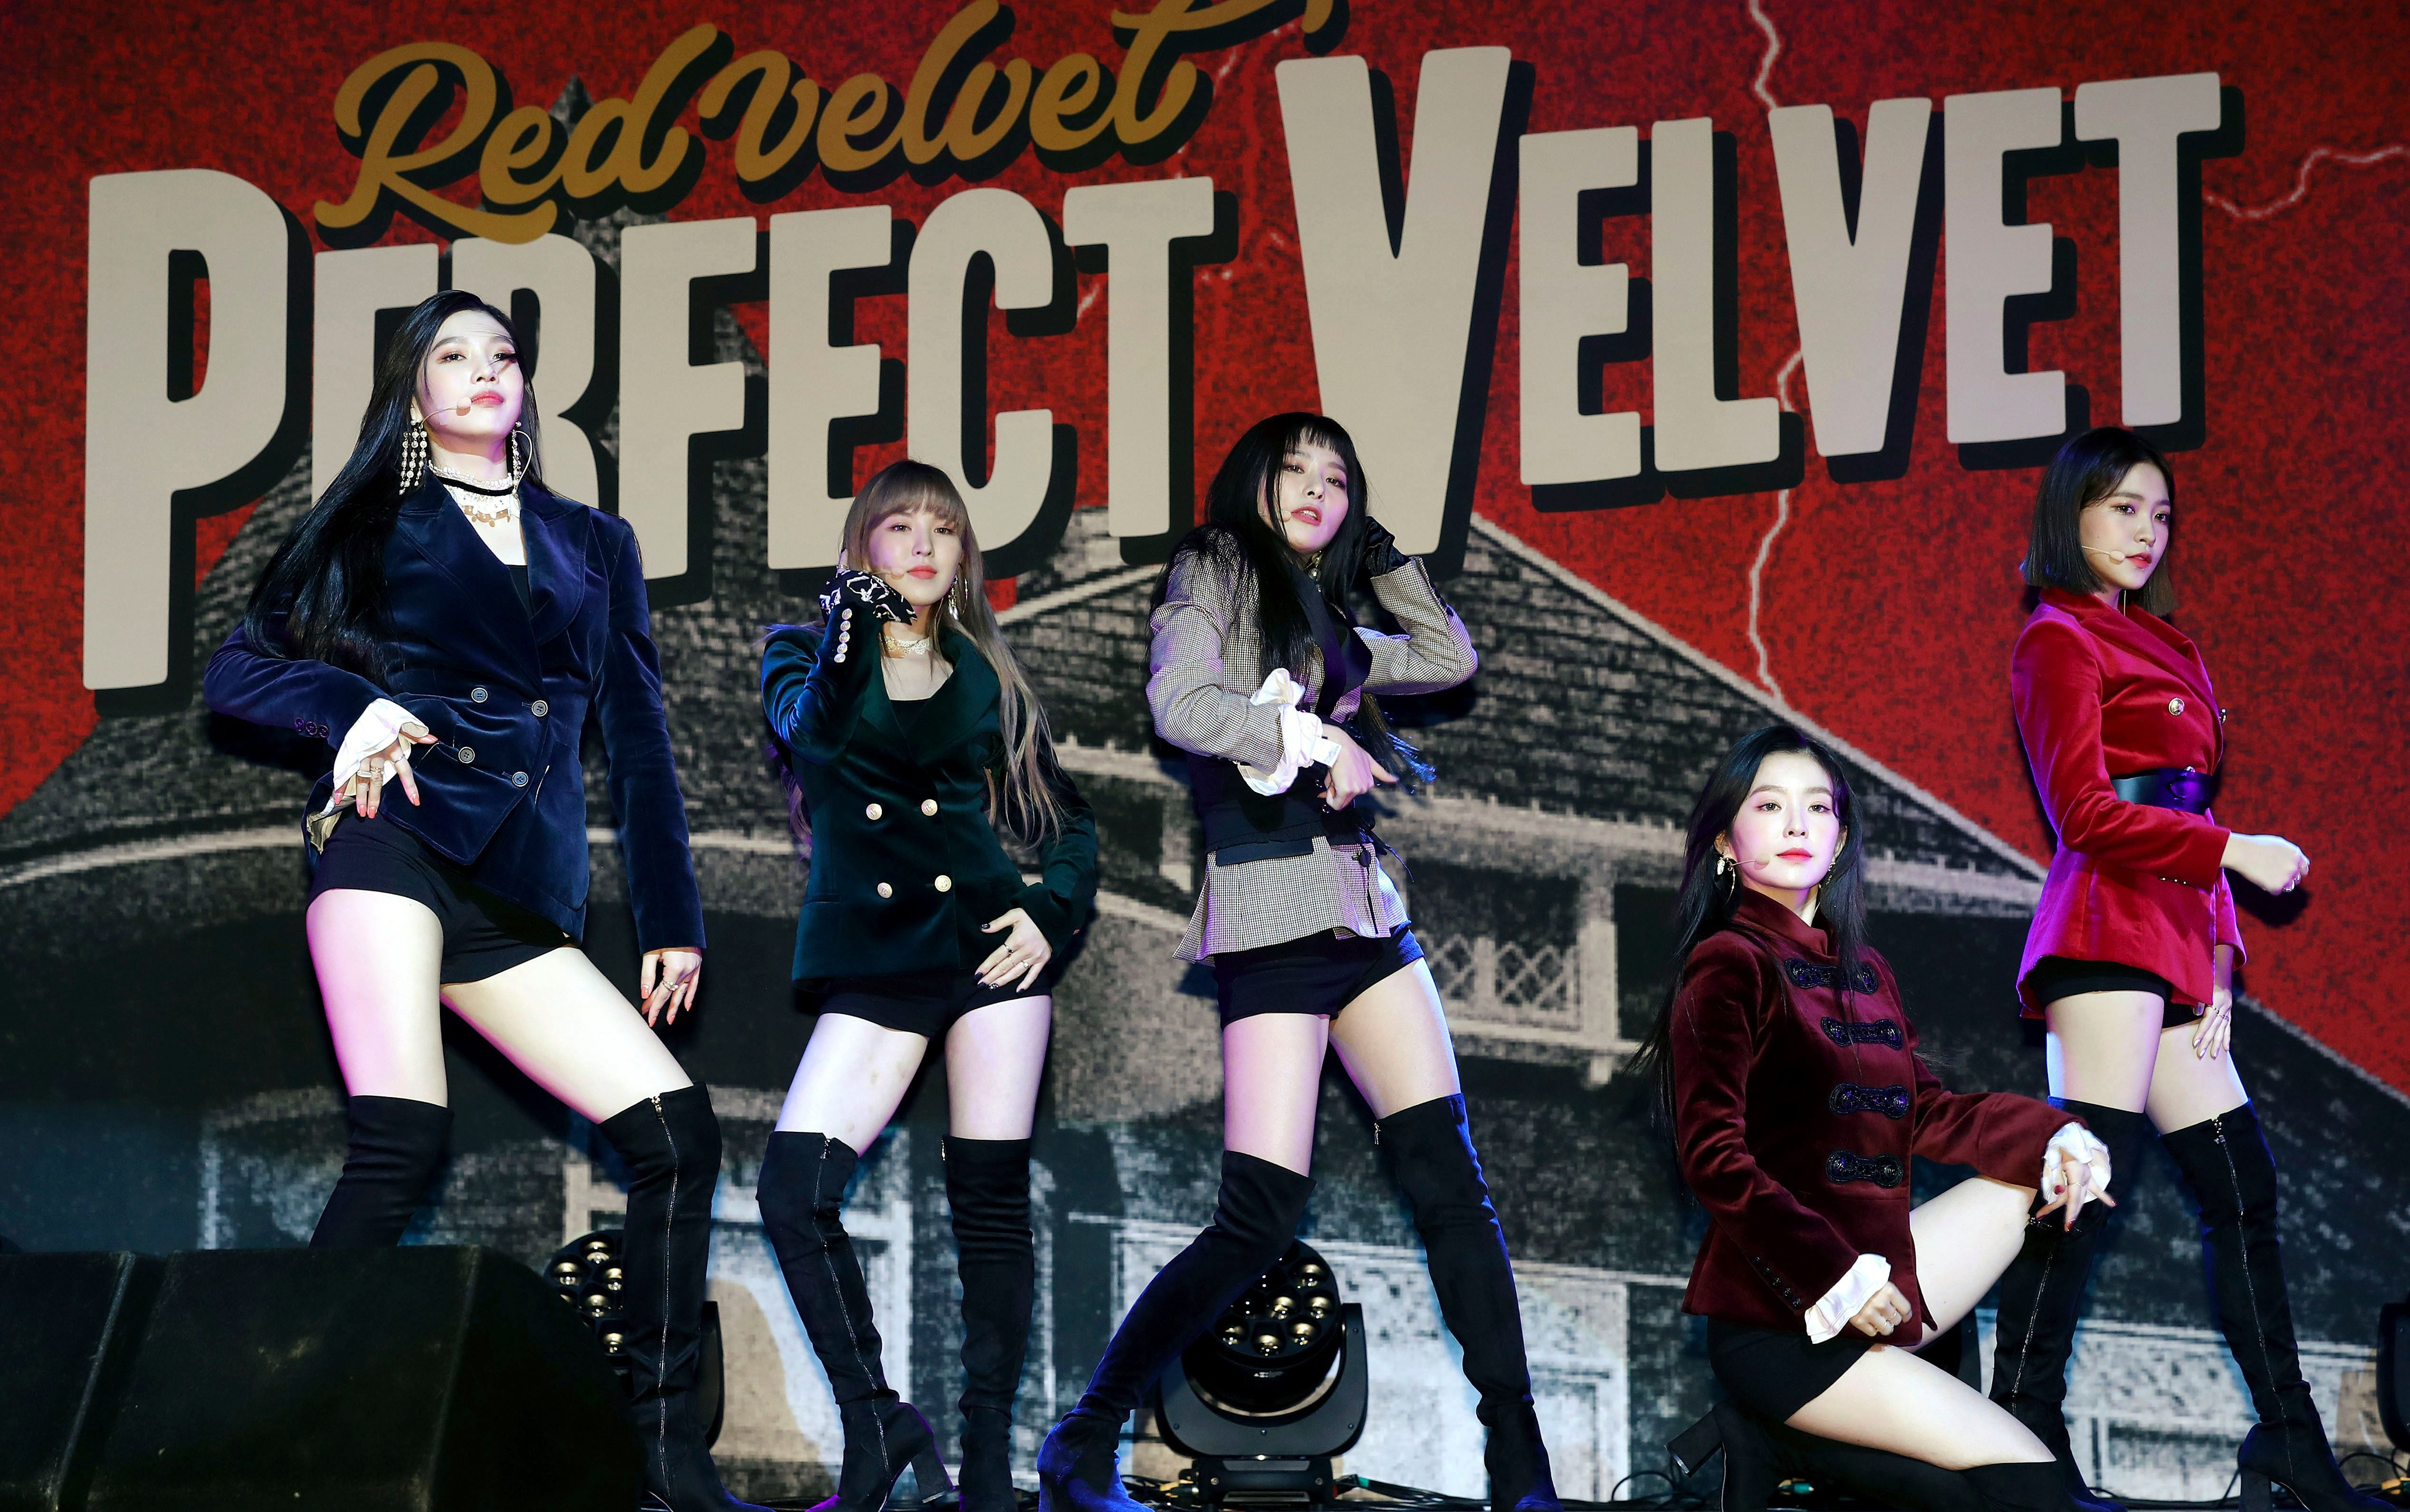 South Korean girl group Red Velvet